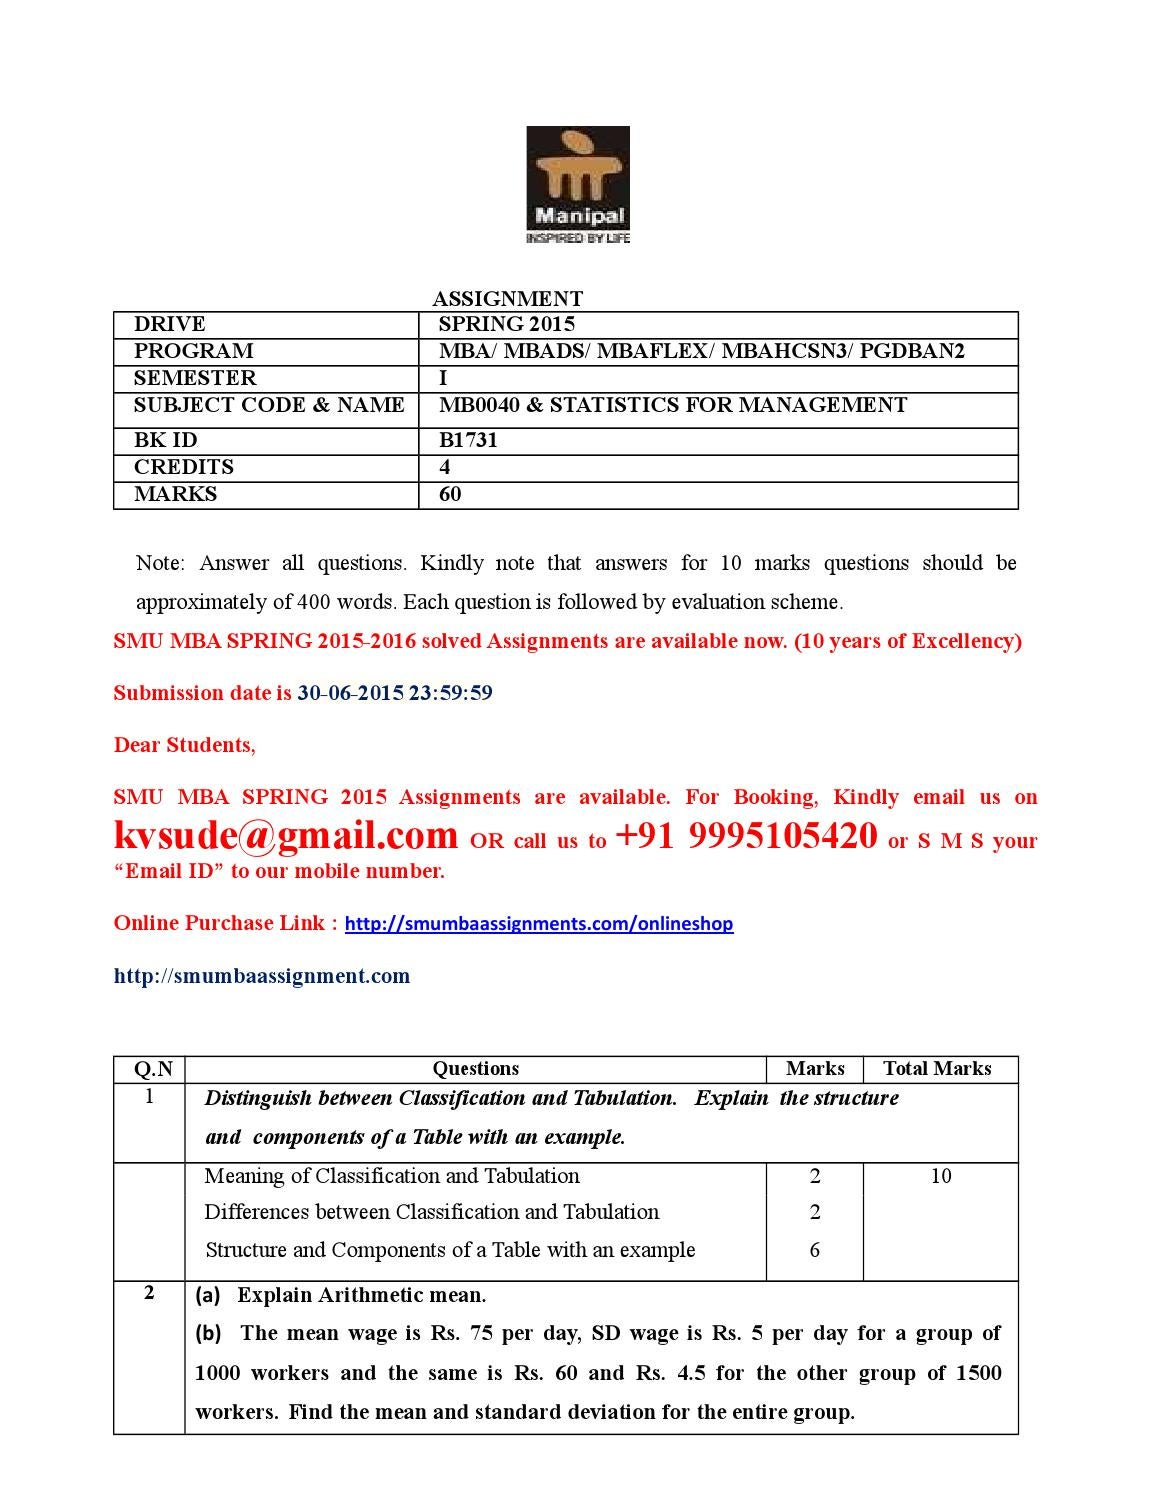 mb0040 smu mba About smu mba assignments - smu mba assignments smu (sikkim manipal university) de bba (bachelor of business administration)/mba (master of business administration)/pgdba (post graduate diploma in business administration) solved assignments january 9, 2013 et0009 [event management.